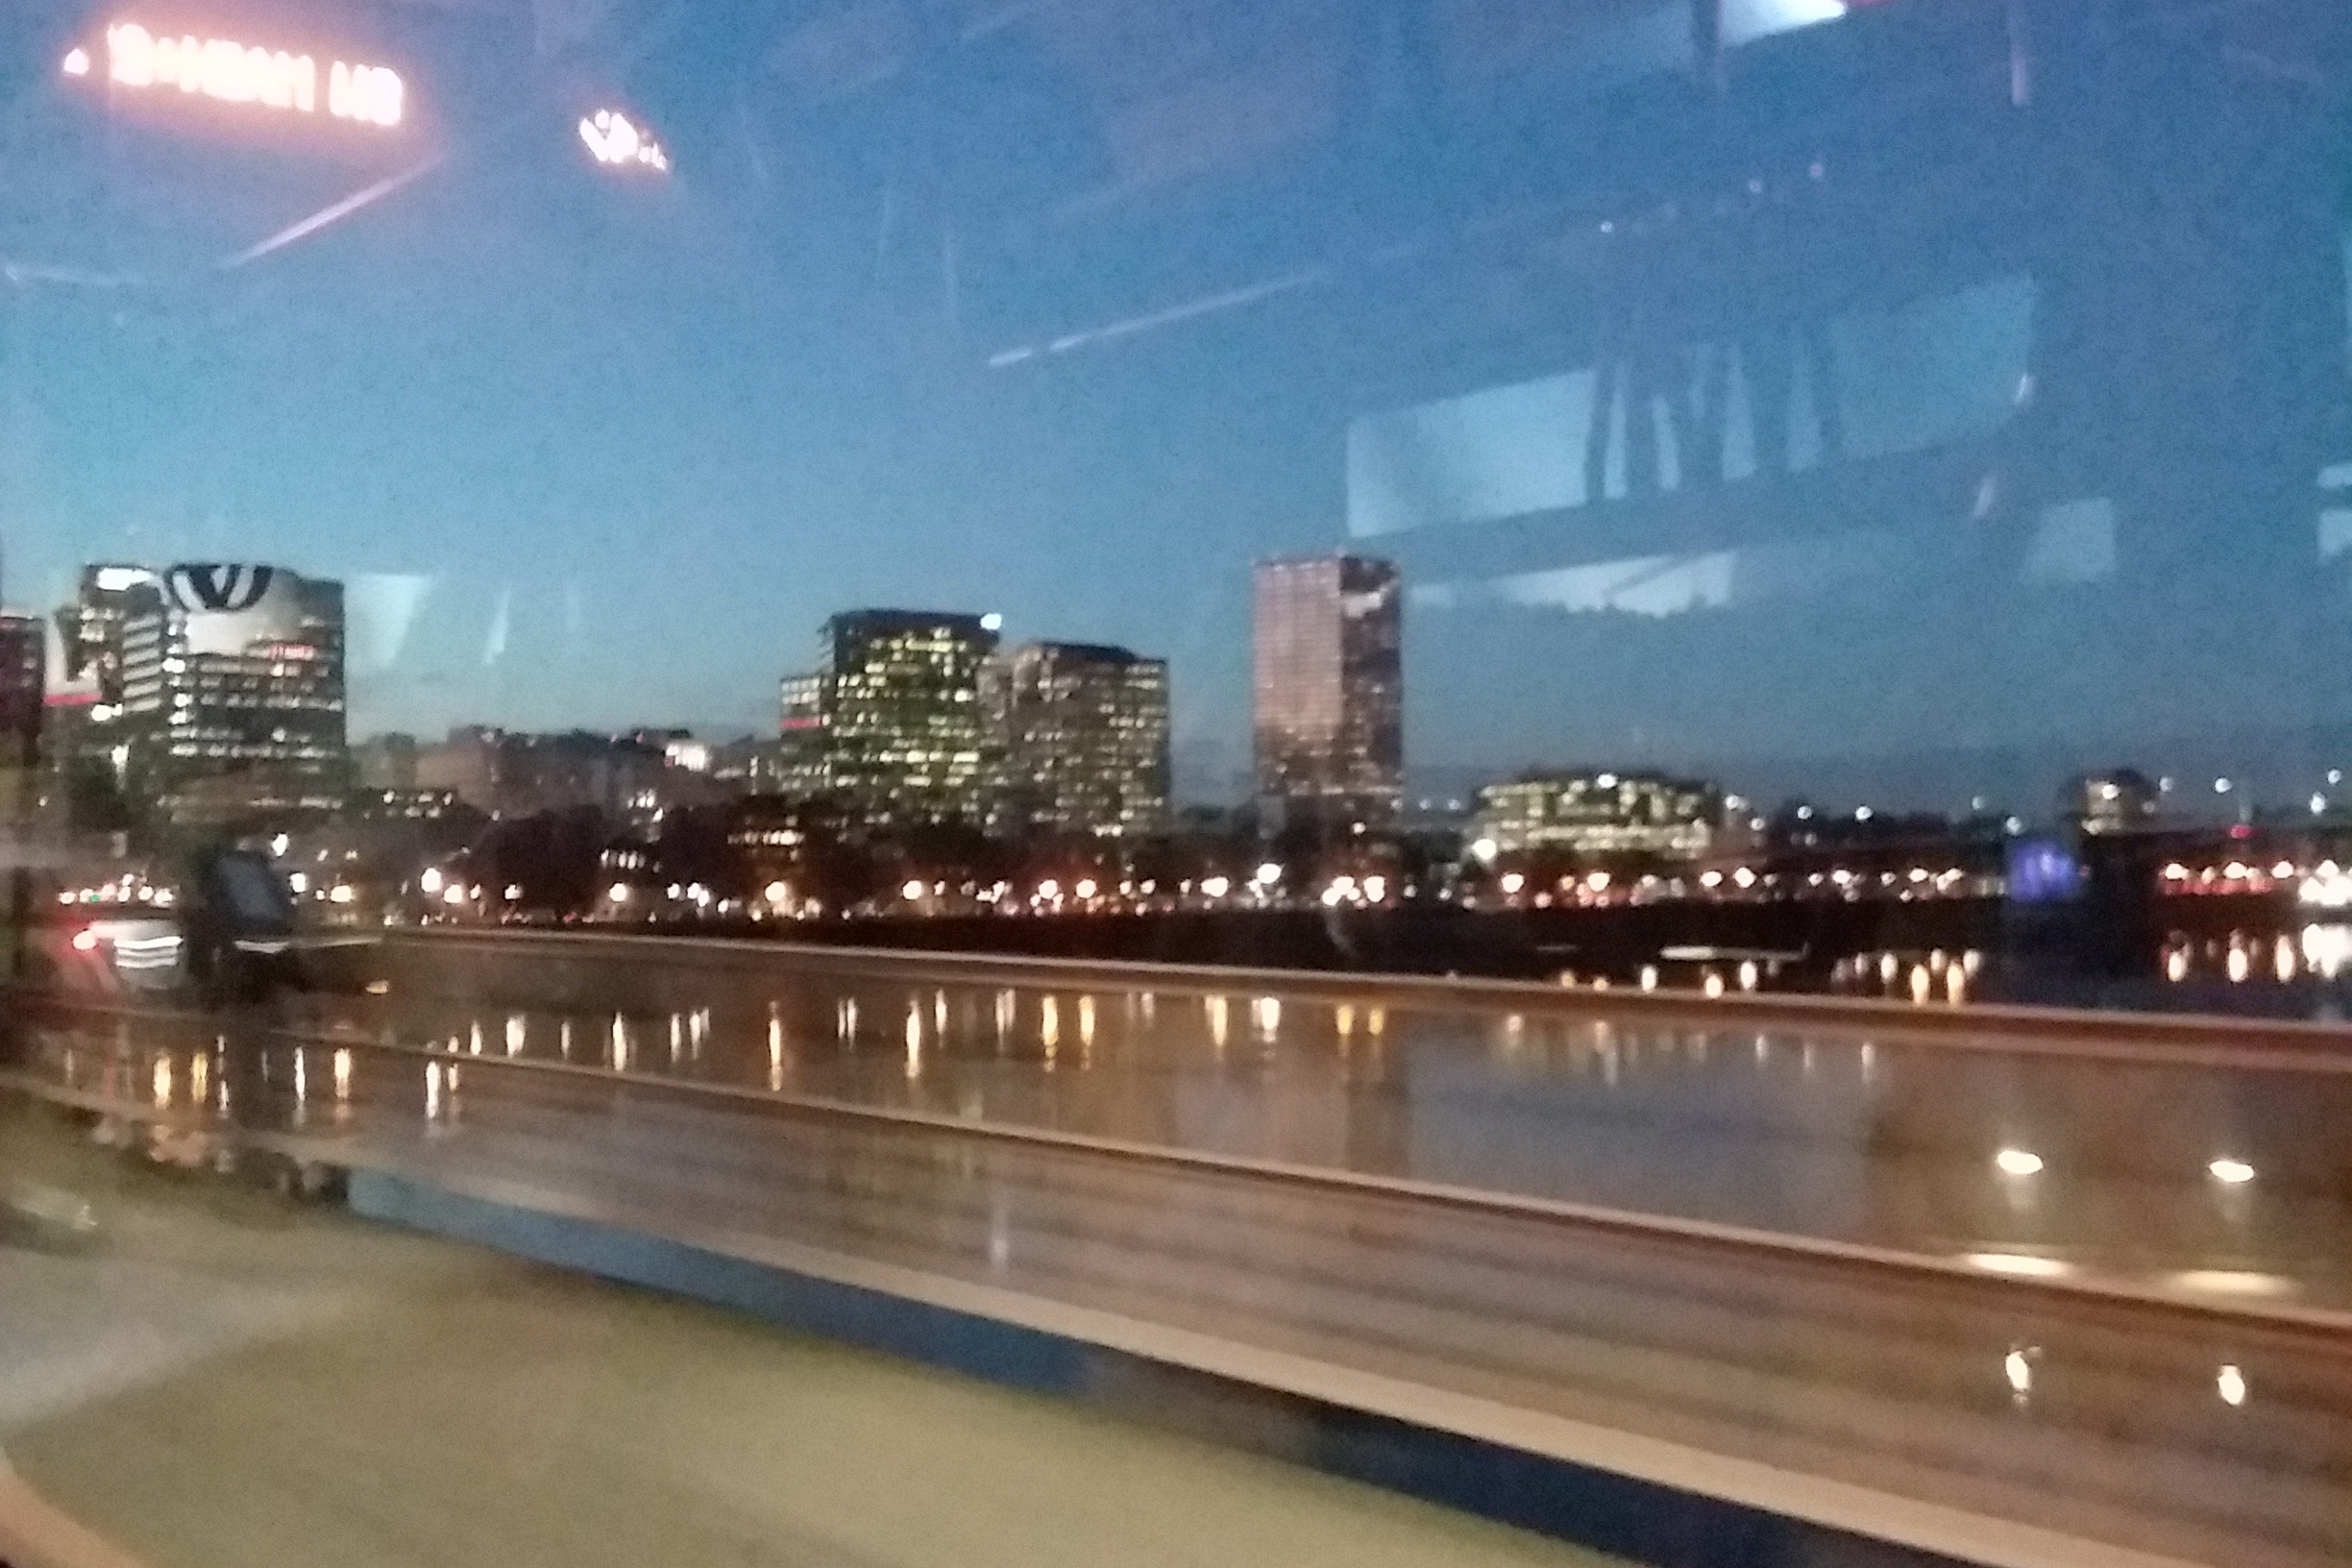 Image of downtown Portland at twilight, taken from a bus going across a bridge. Photo taken by the author of this post.